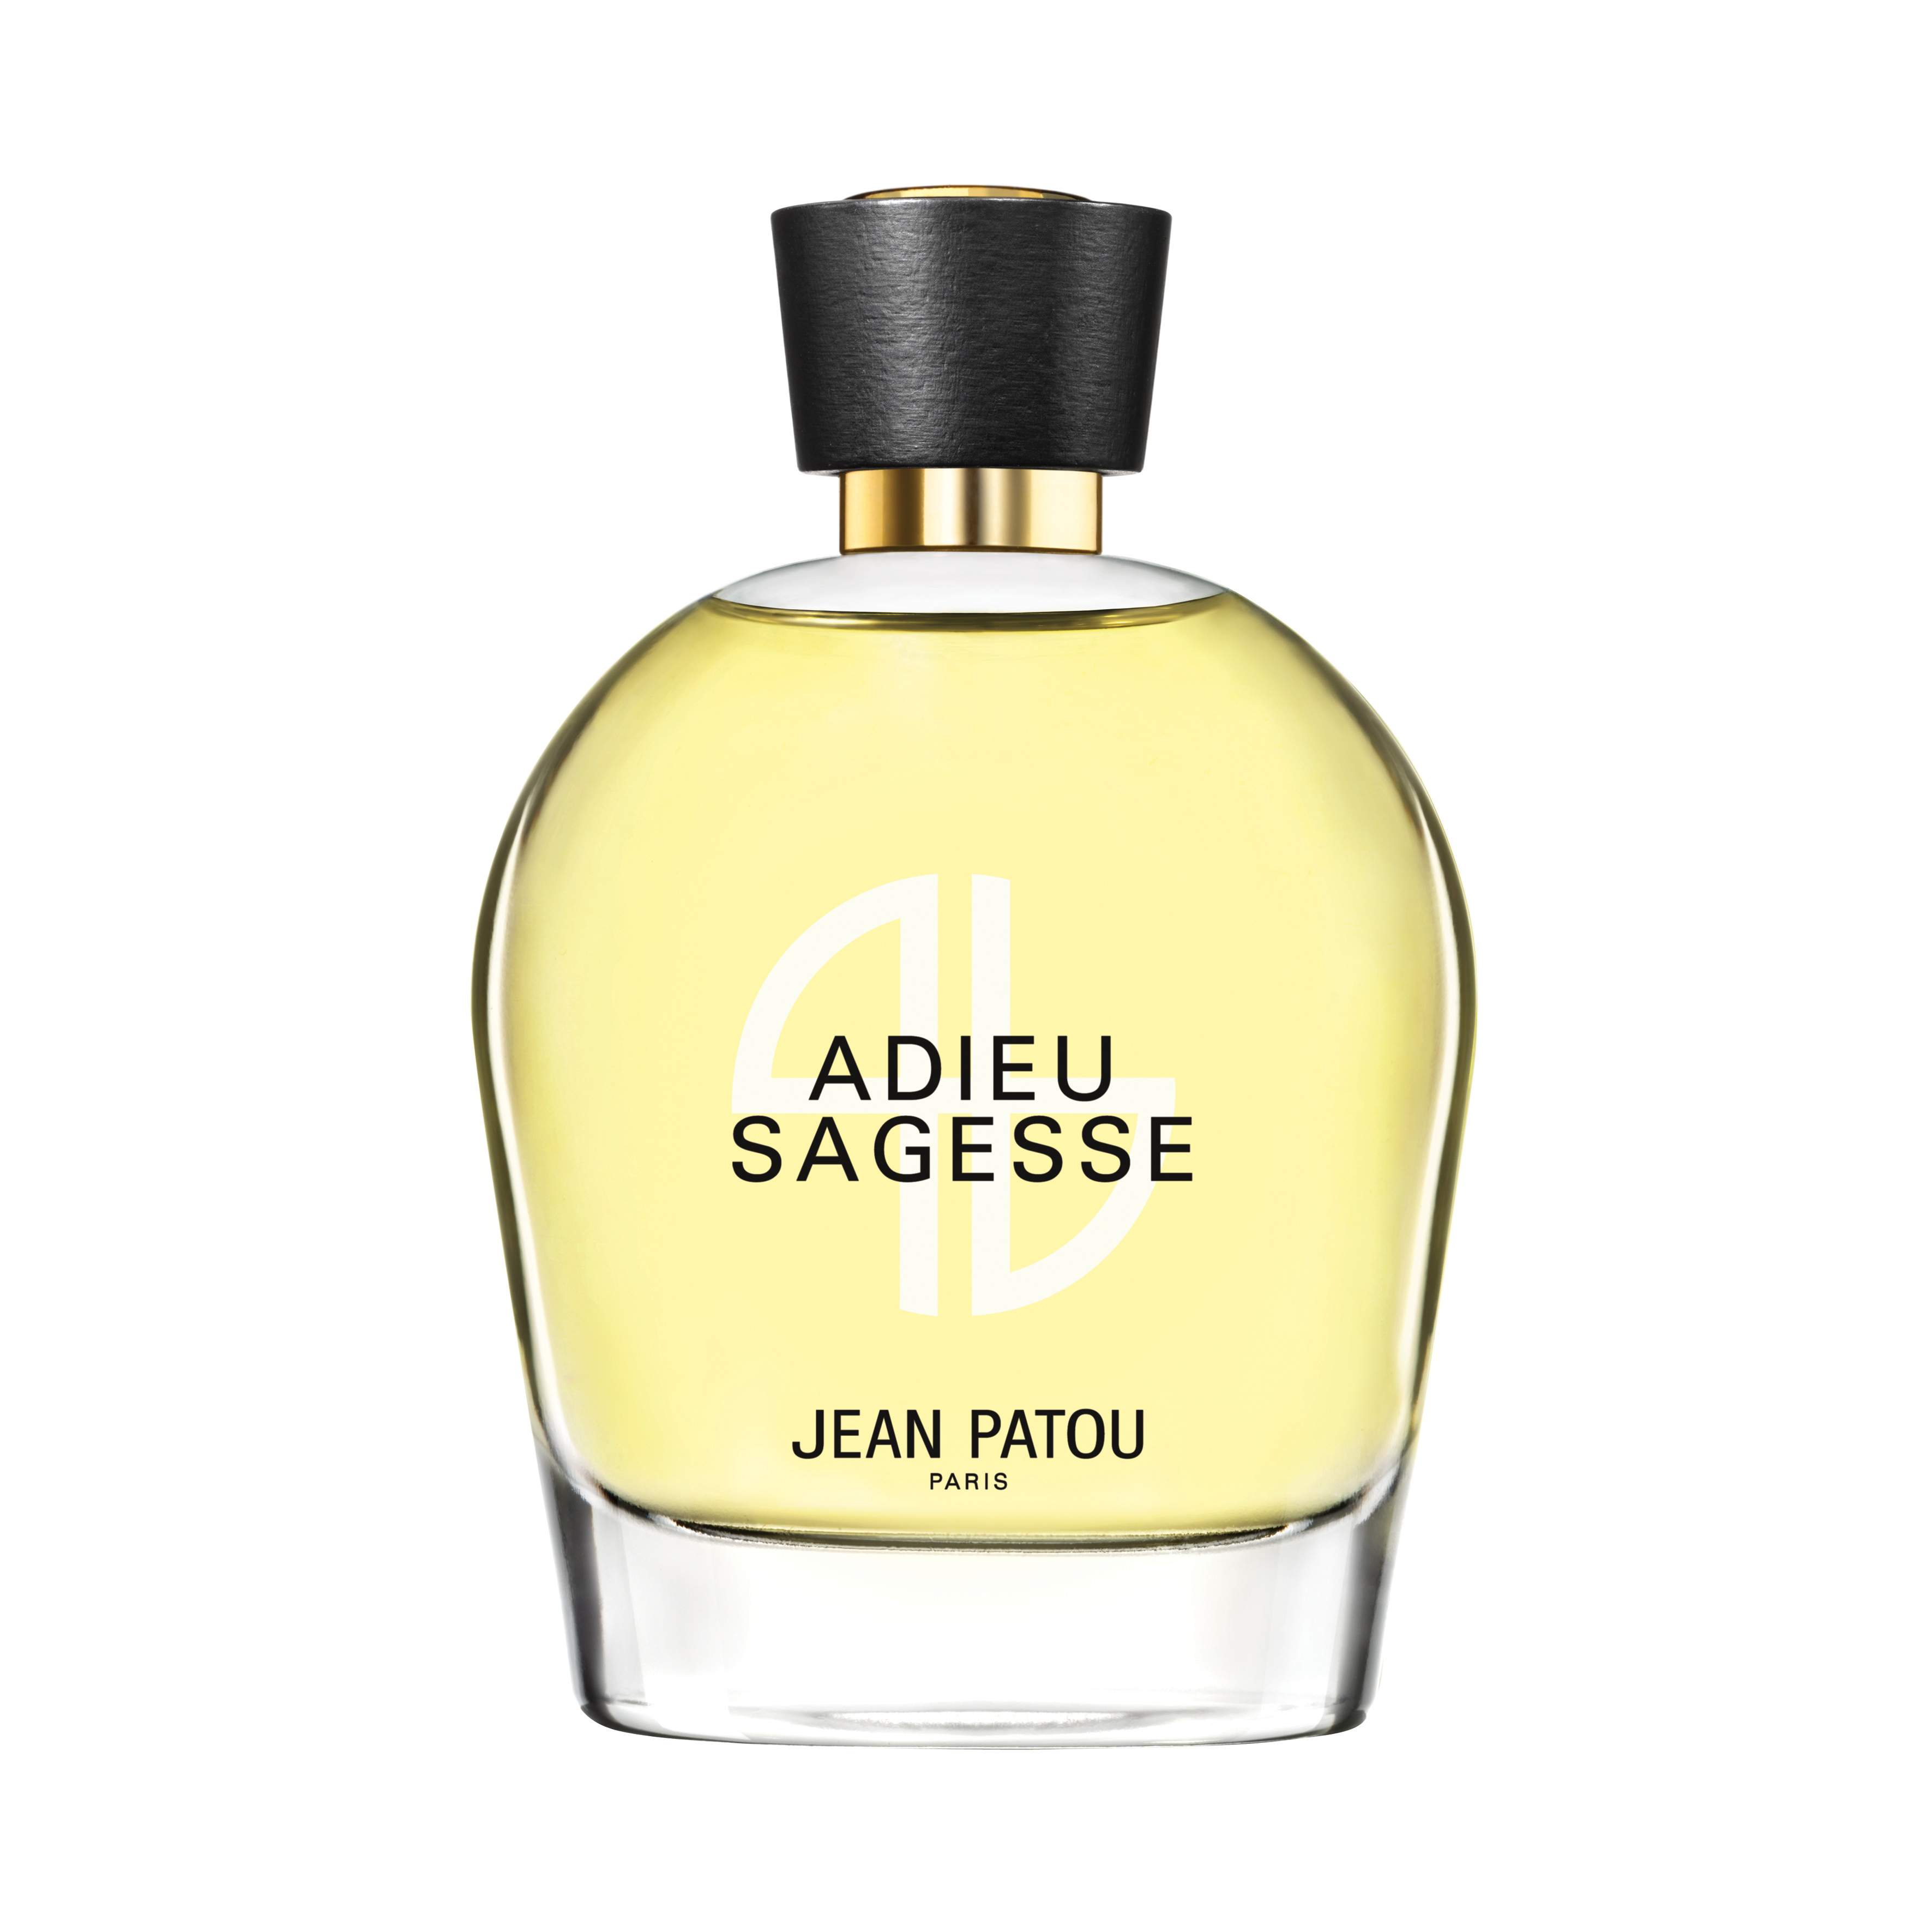 Jean Patou - Page 2 HD-ADIEU-SAGESSE-Jean-Patou-COLLECTION-HERITAGE-Flacon